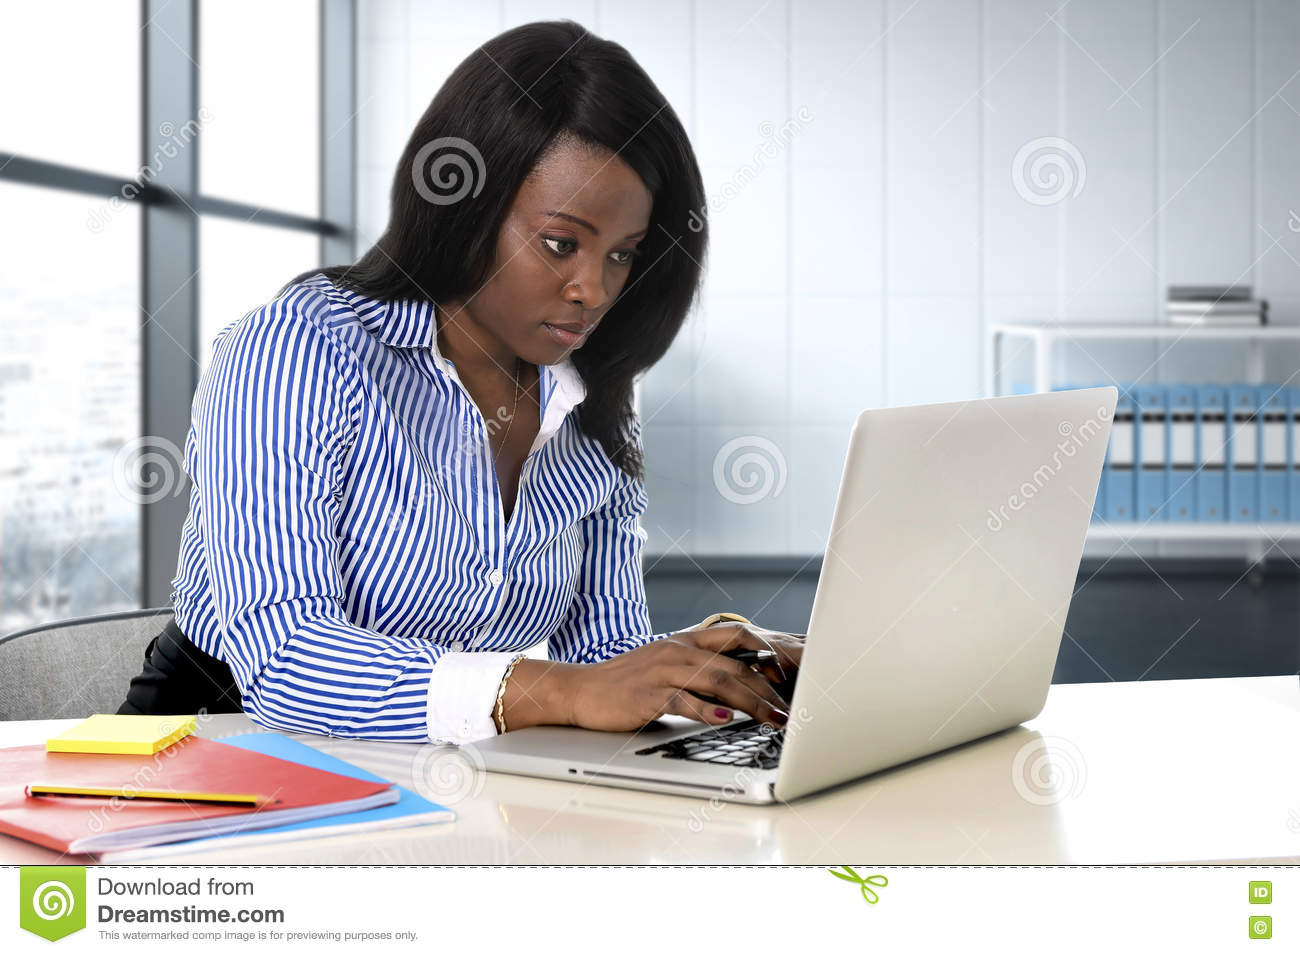 Black ethnicity woman sitting at computer laptop desk typing concentrated working